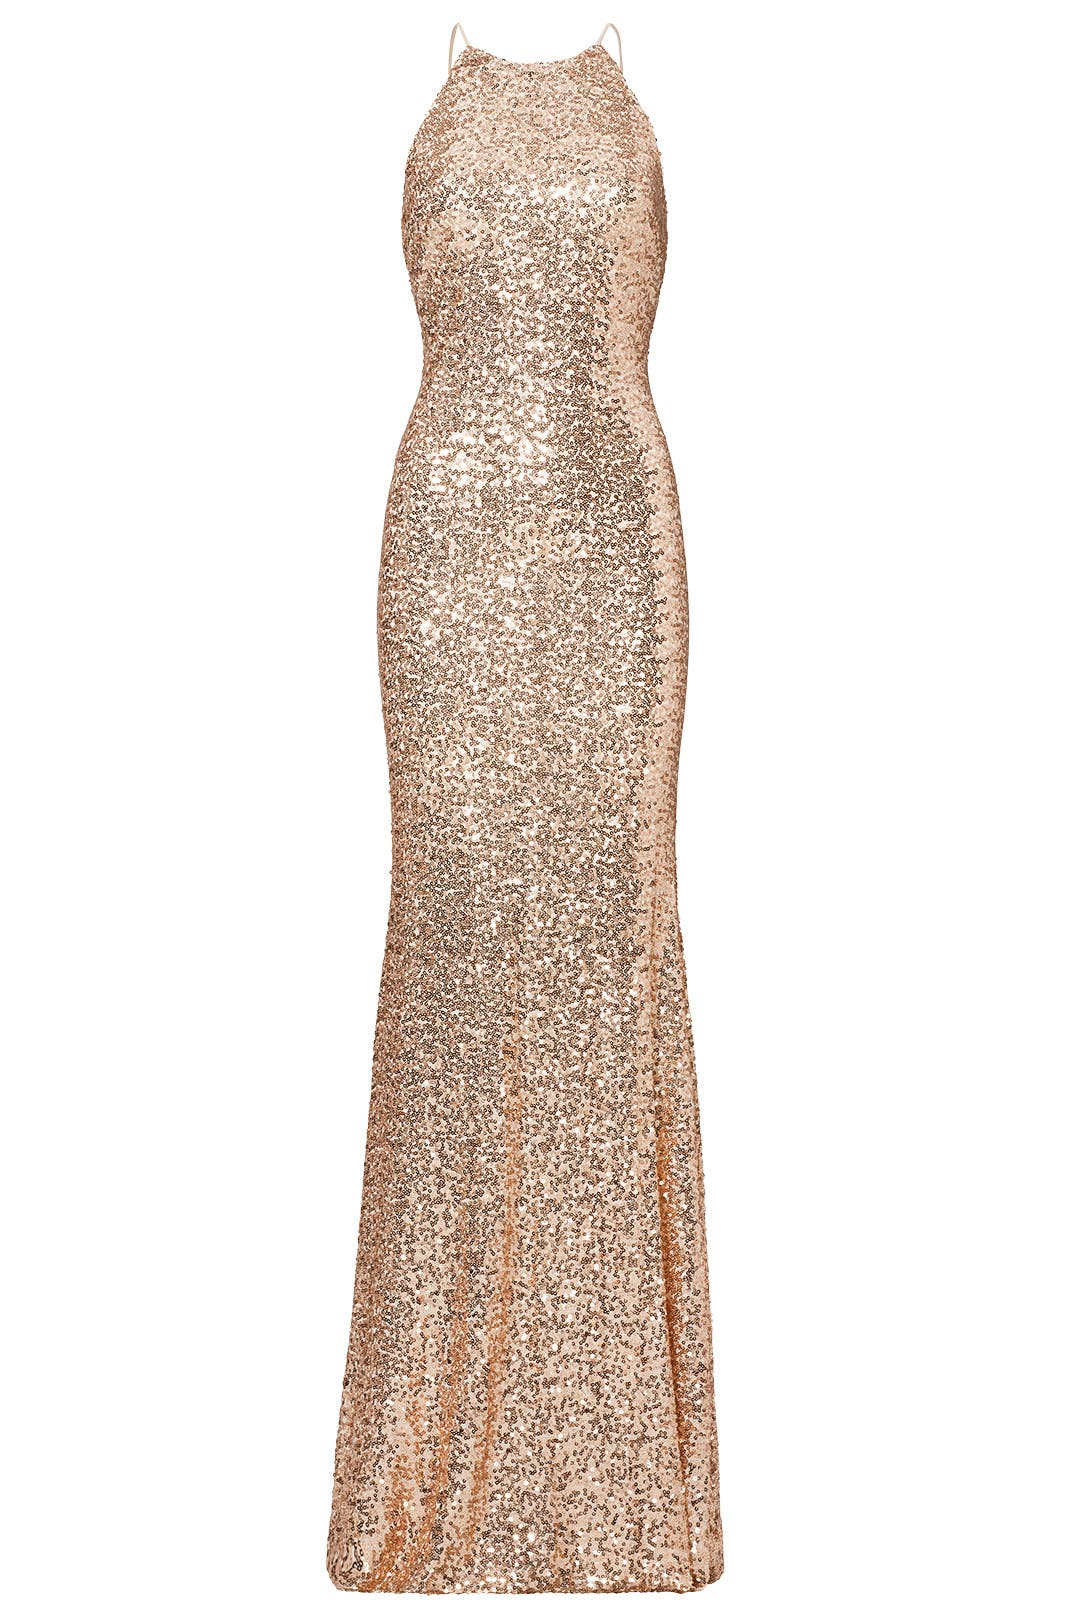 Blush Sequin Racerback Gown by Badgley Mischka for $80 - $100 | Rent ...